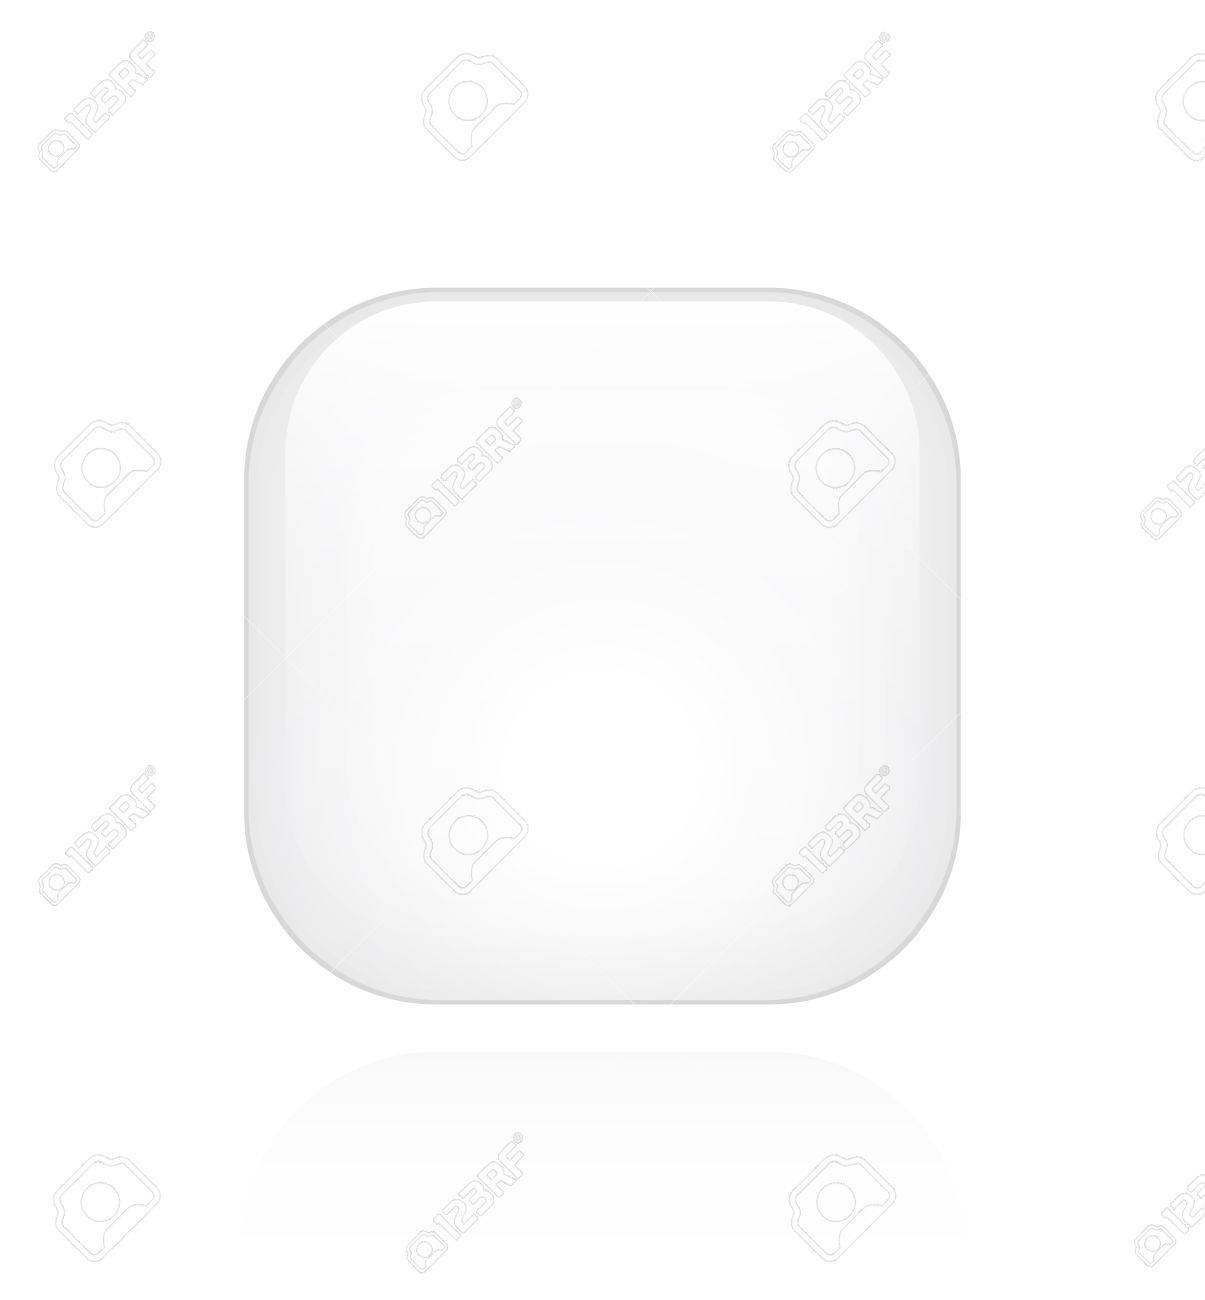 A single white minimalistic button with room for text or an icon Stock Vector - 19481814